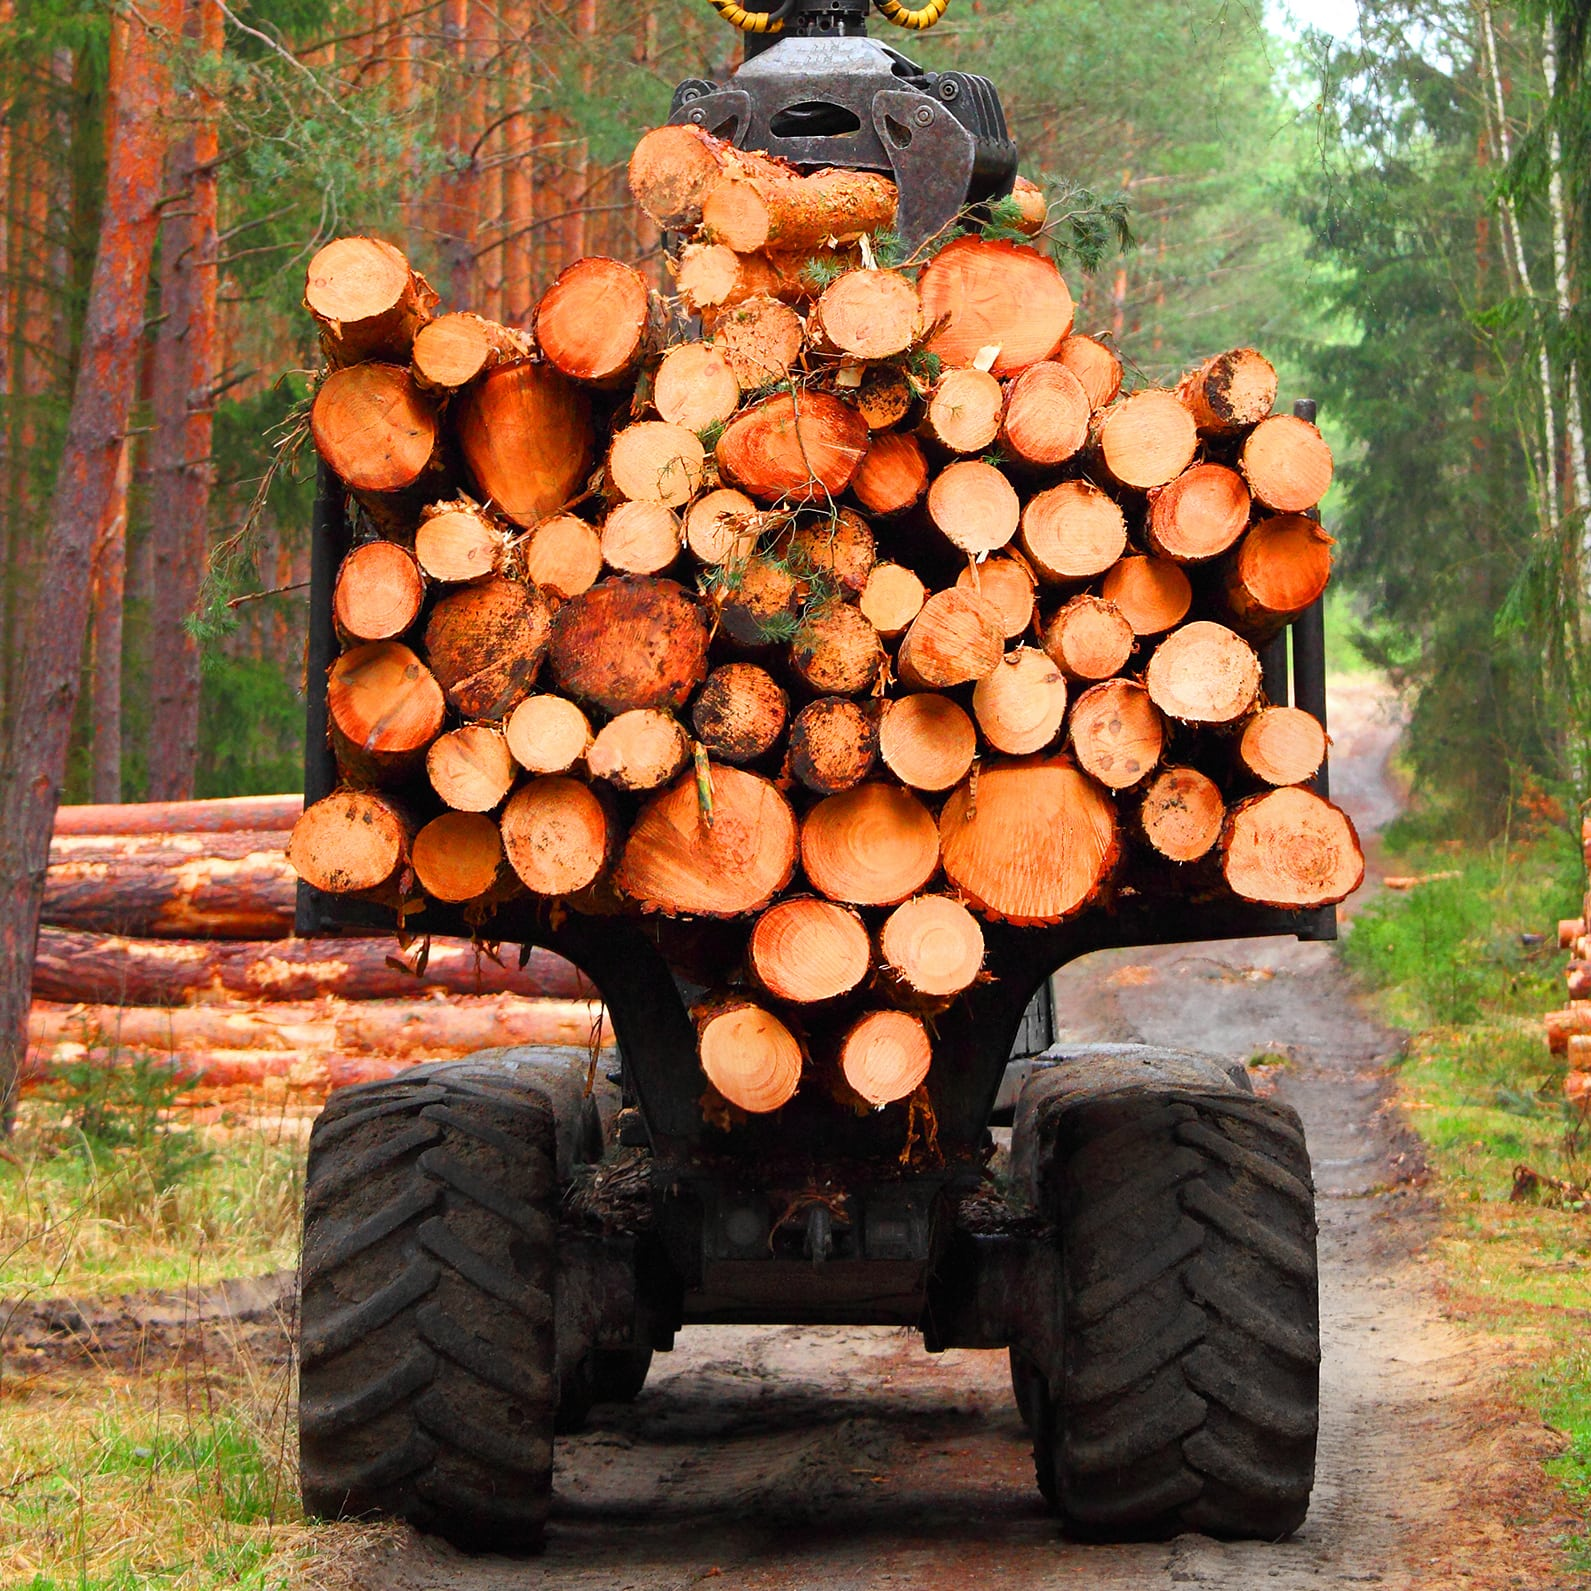 Lumberjack with modern harvester working in a forest